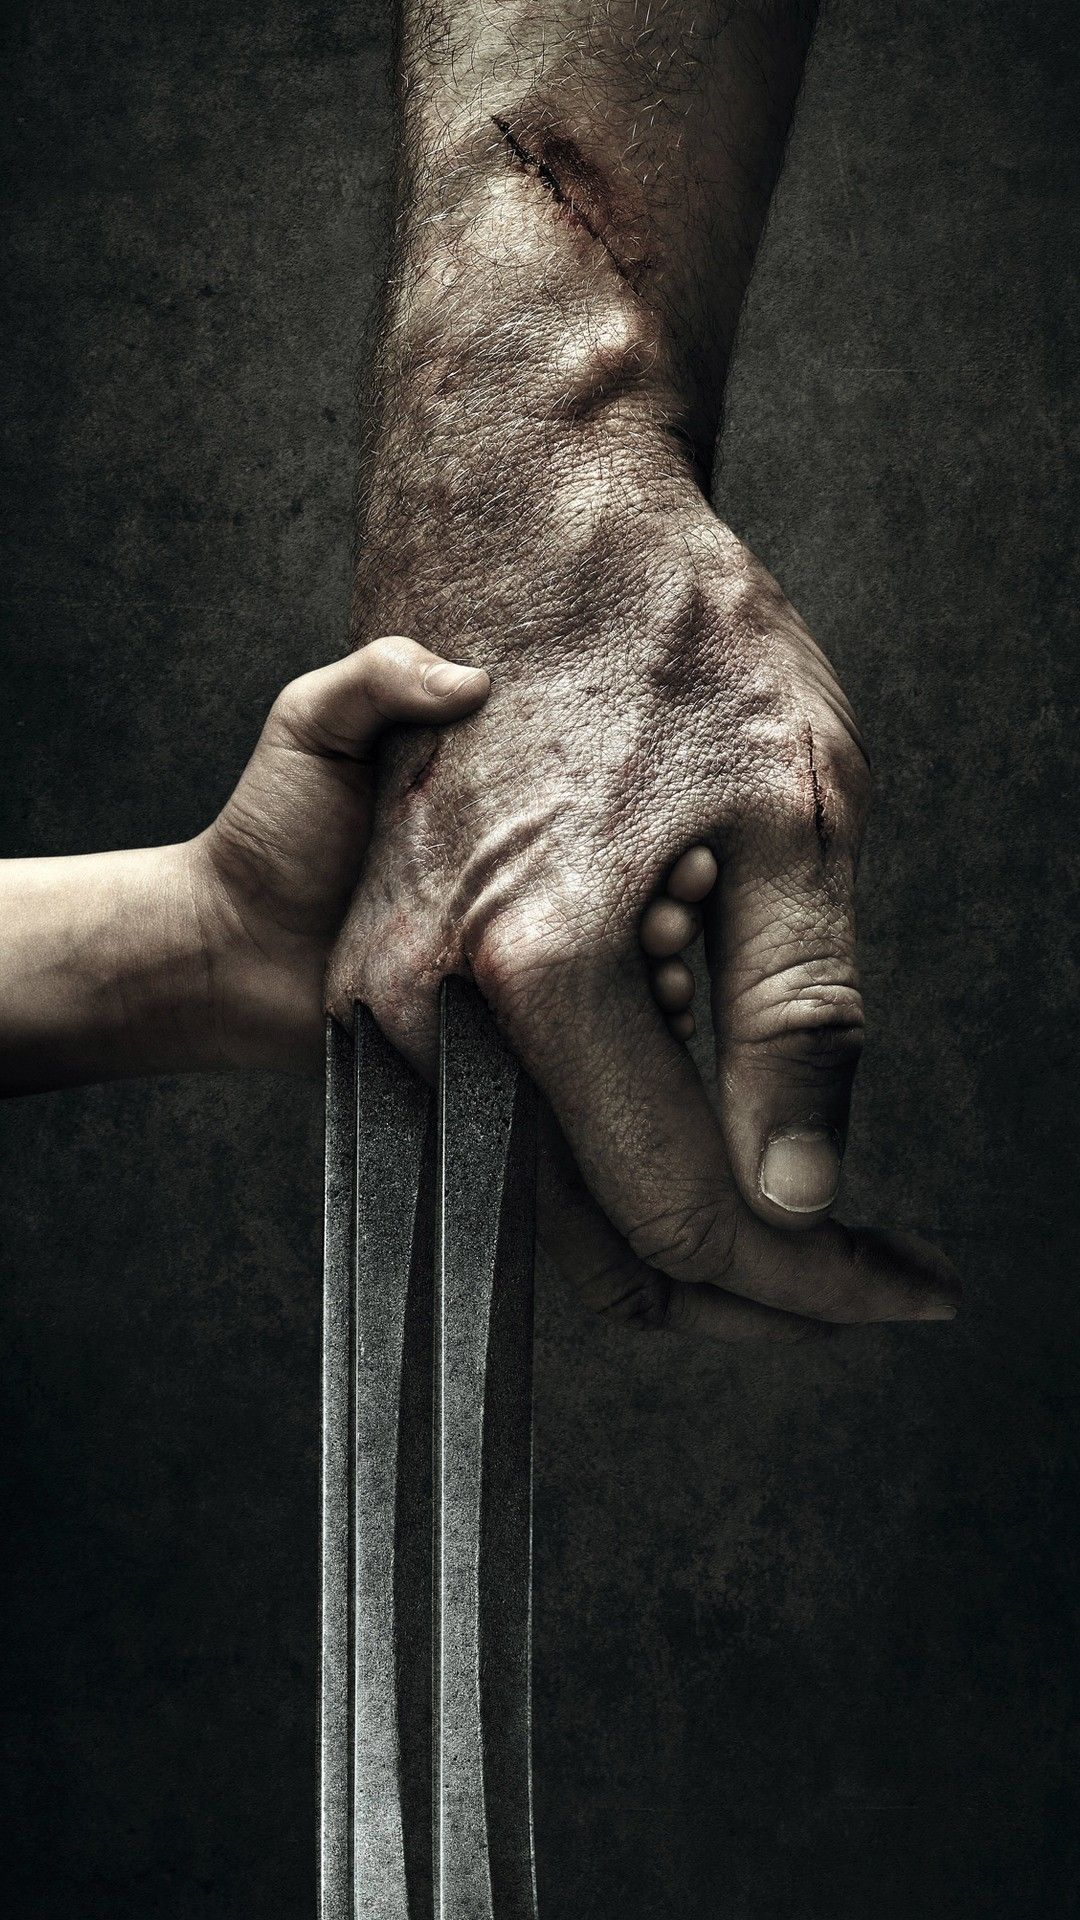 2017 Logan Movie Hd Honor Smartphone Wallpaper 1080x1920 Logan Movies Superhero Wallpaper Hd Wallpapers For Mobile